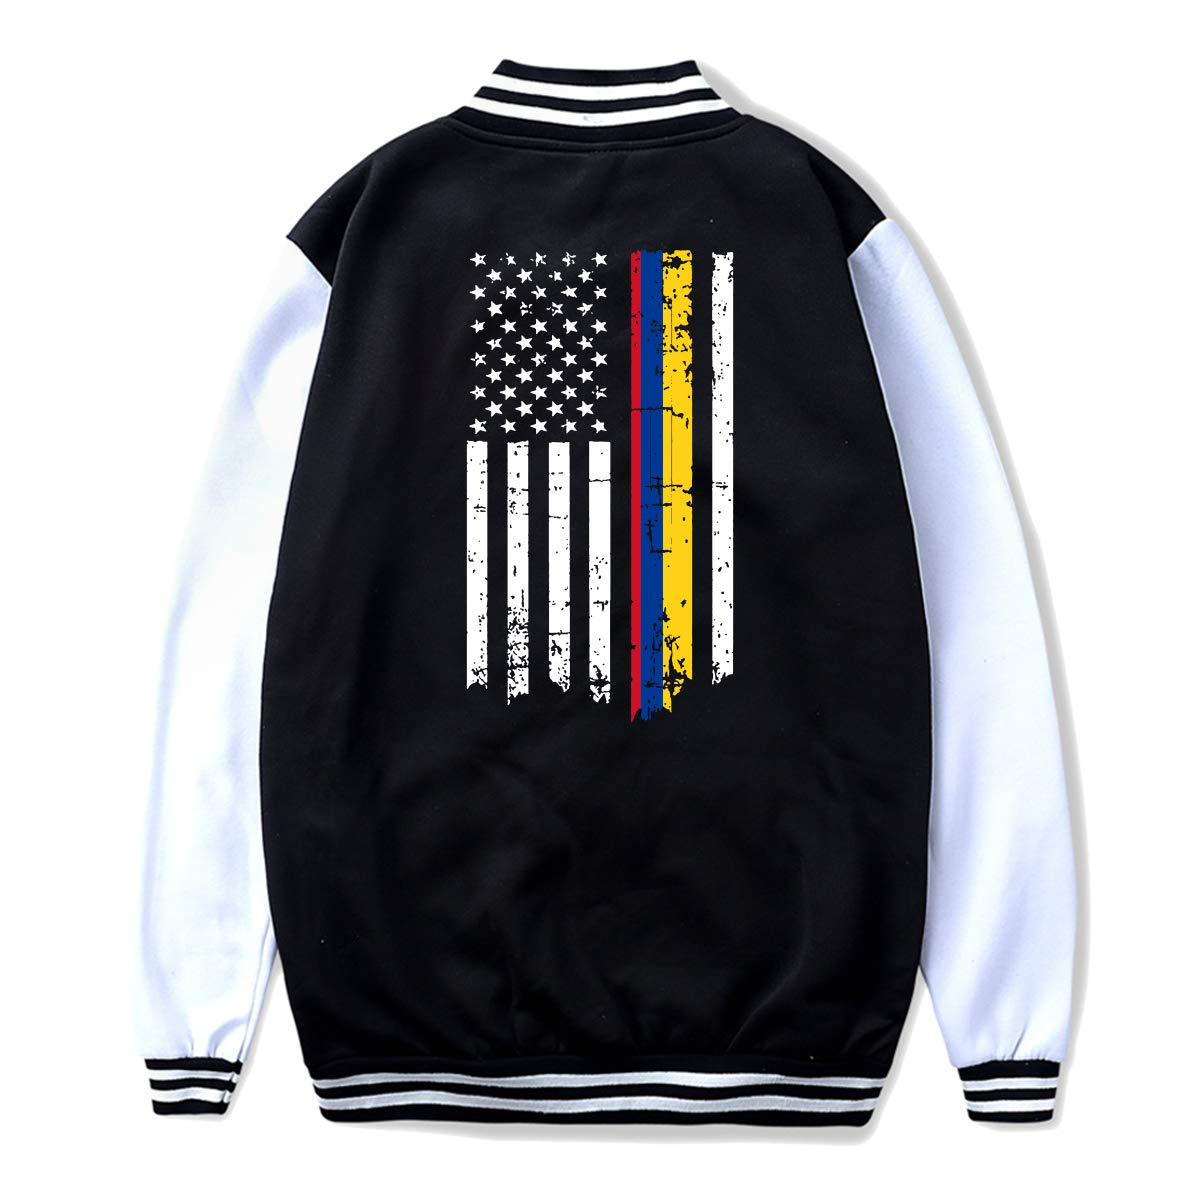 NJKM5MJ Unisex Teen Baseball Uniform Jacket Colombia Flag American Thin Line Flag Coat Sweatshirt Outwear Back Print